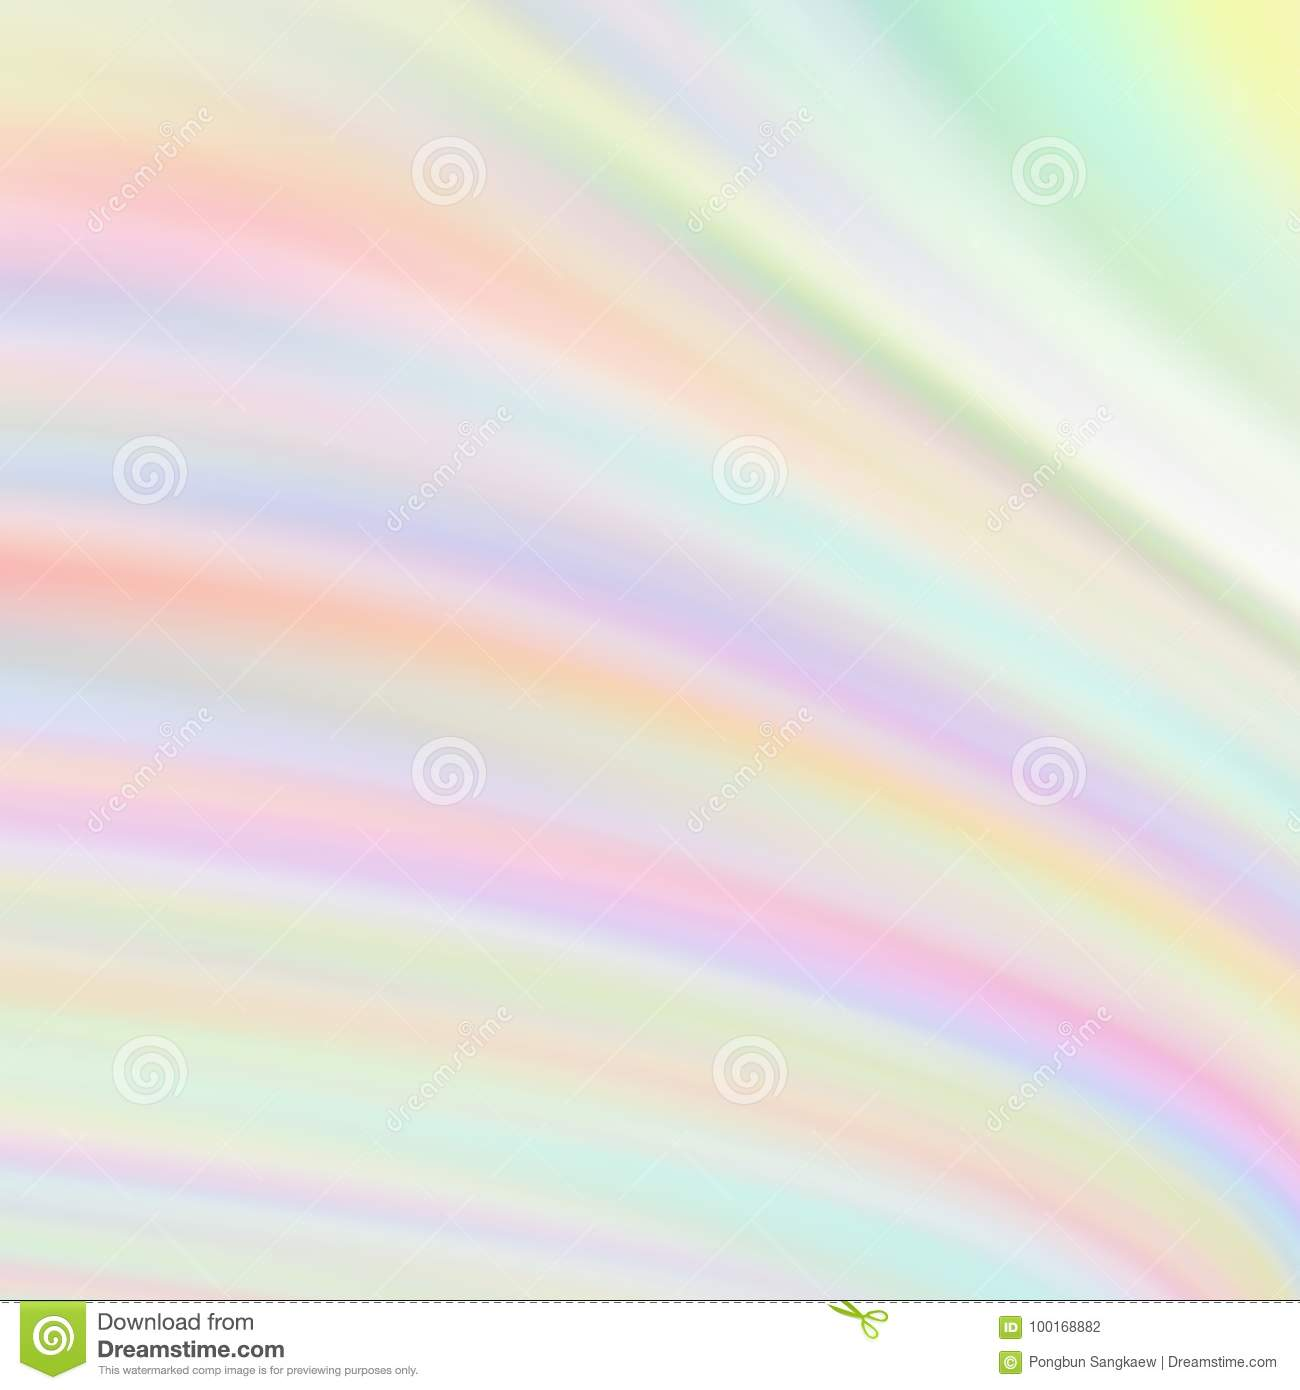 colorful holographic rainbow soft color background colorful holographic rainbow soft color template wallpaper banner background 100168882